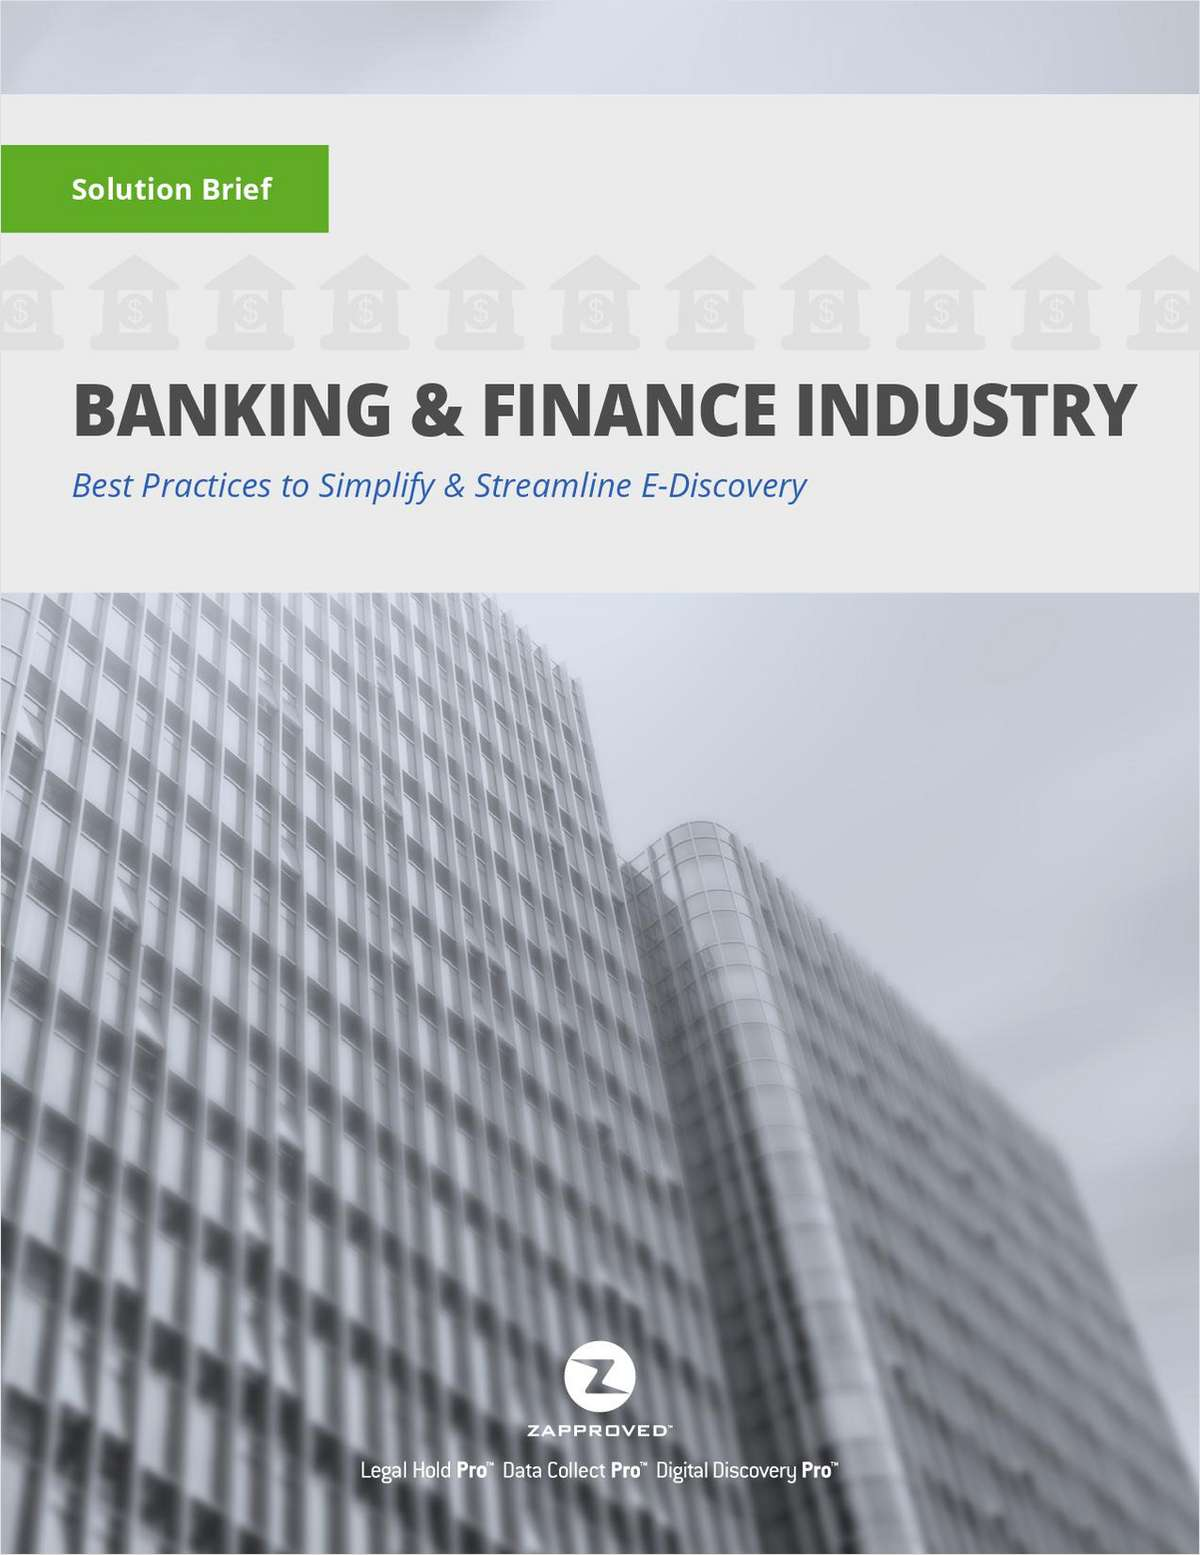 2017 Solution Brief: Banking and Finance Industry